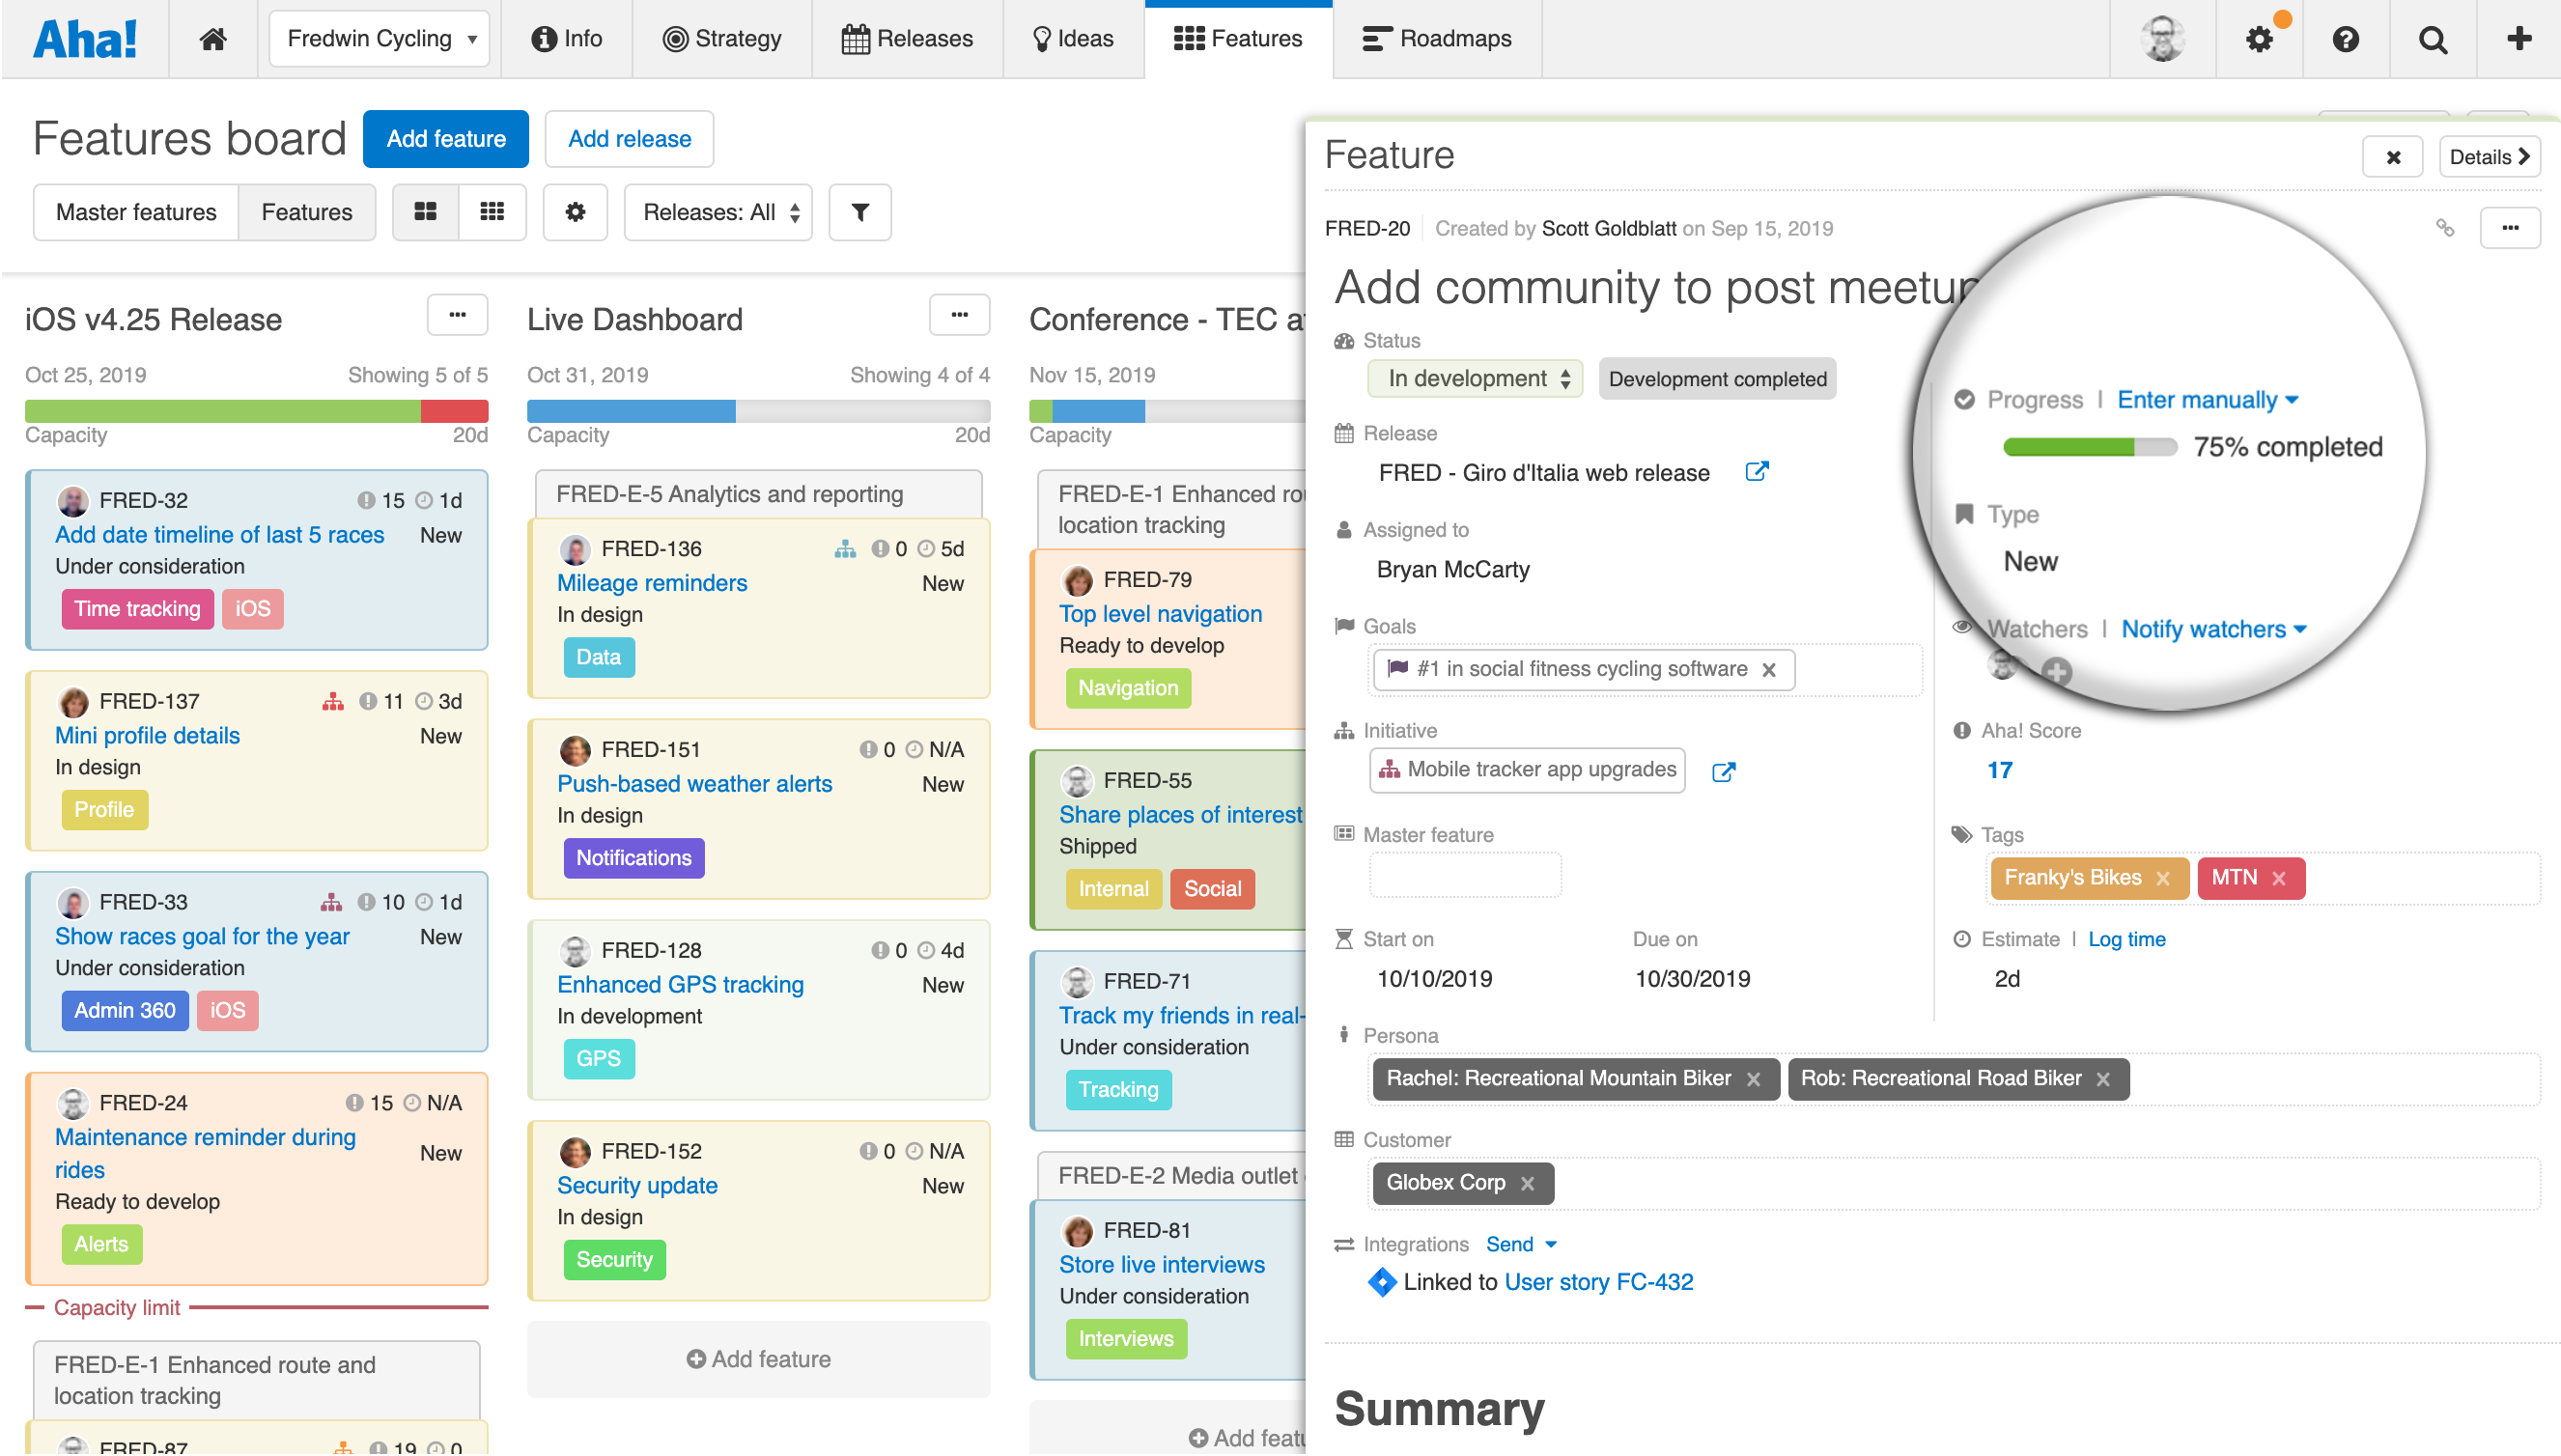 Percent complete displayed in Aha! coming from Jira integration